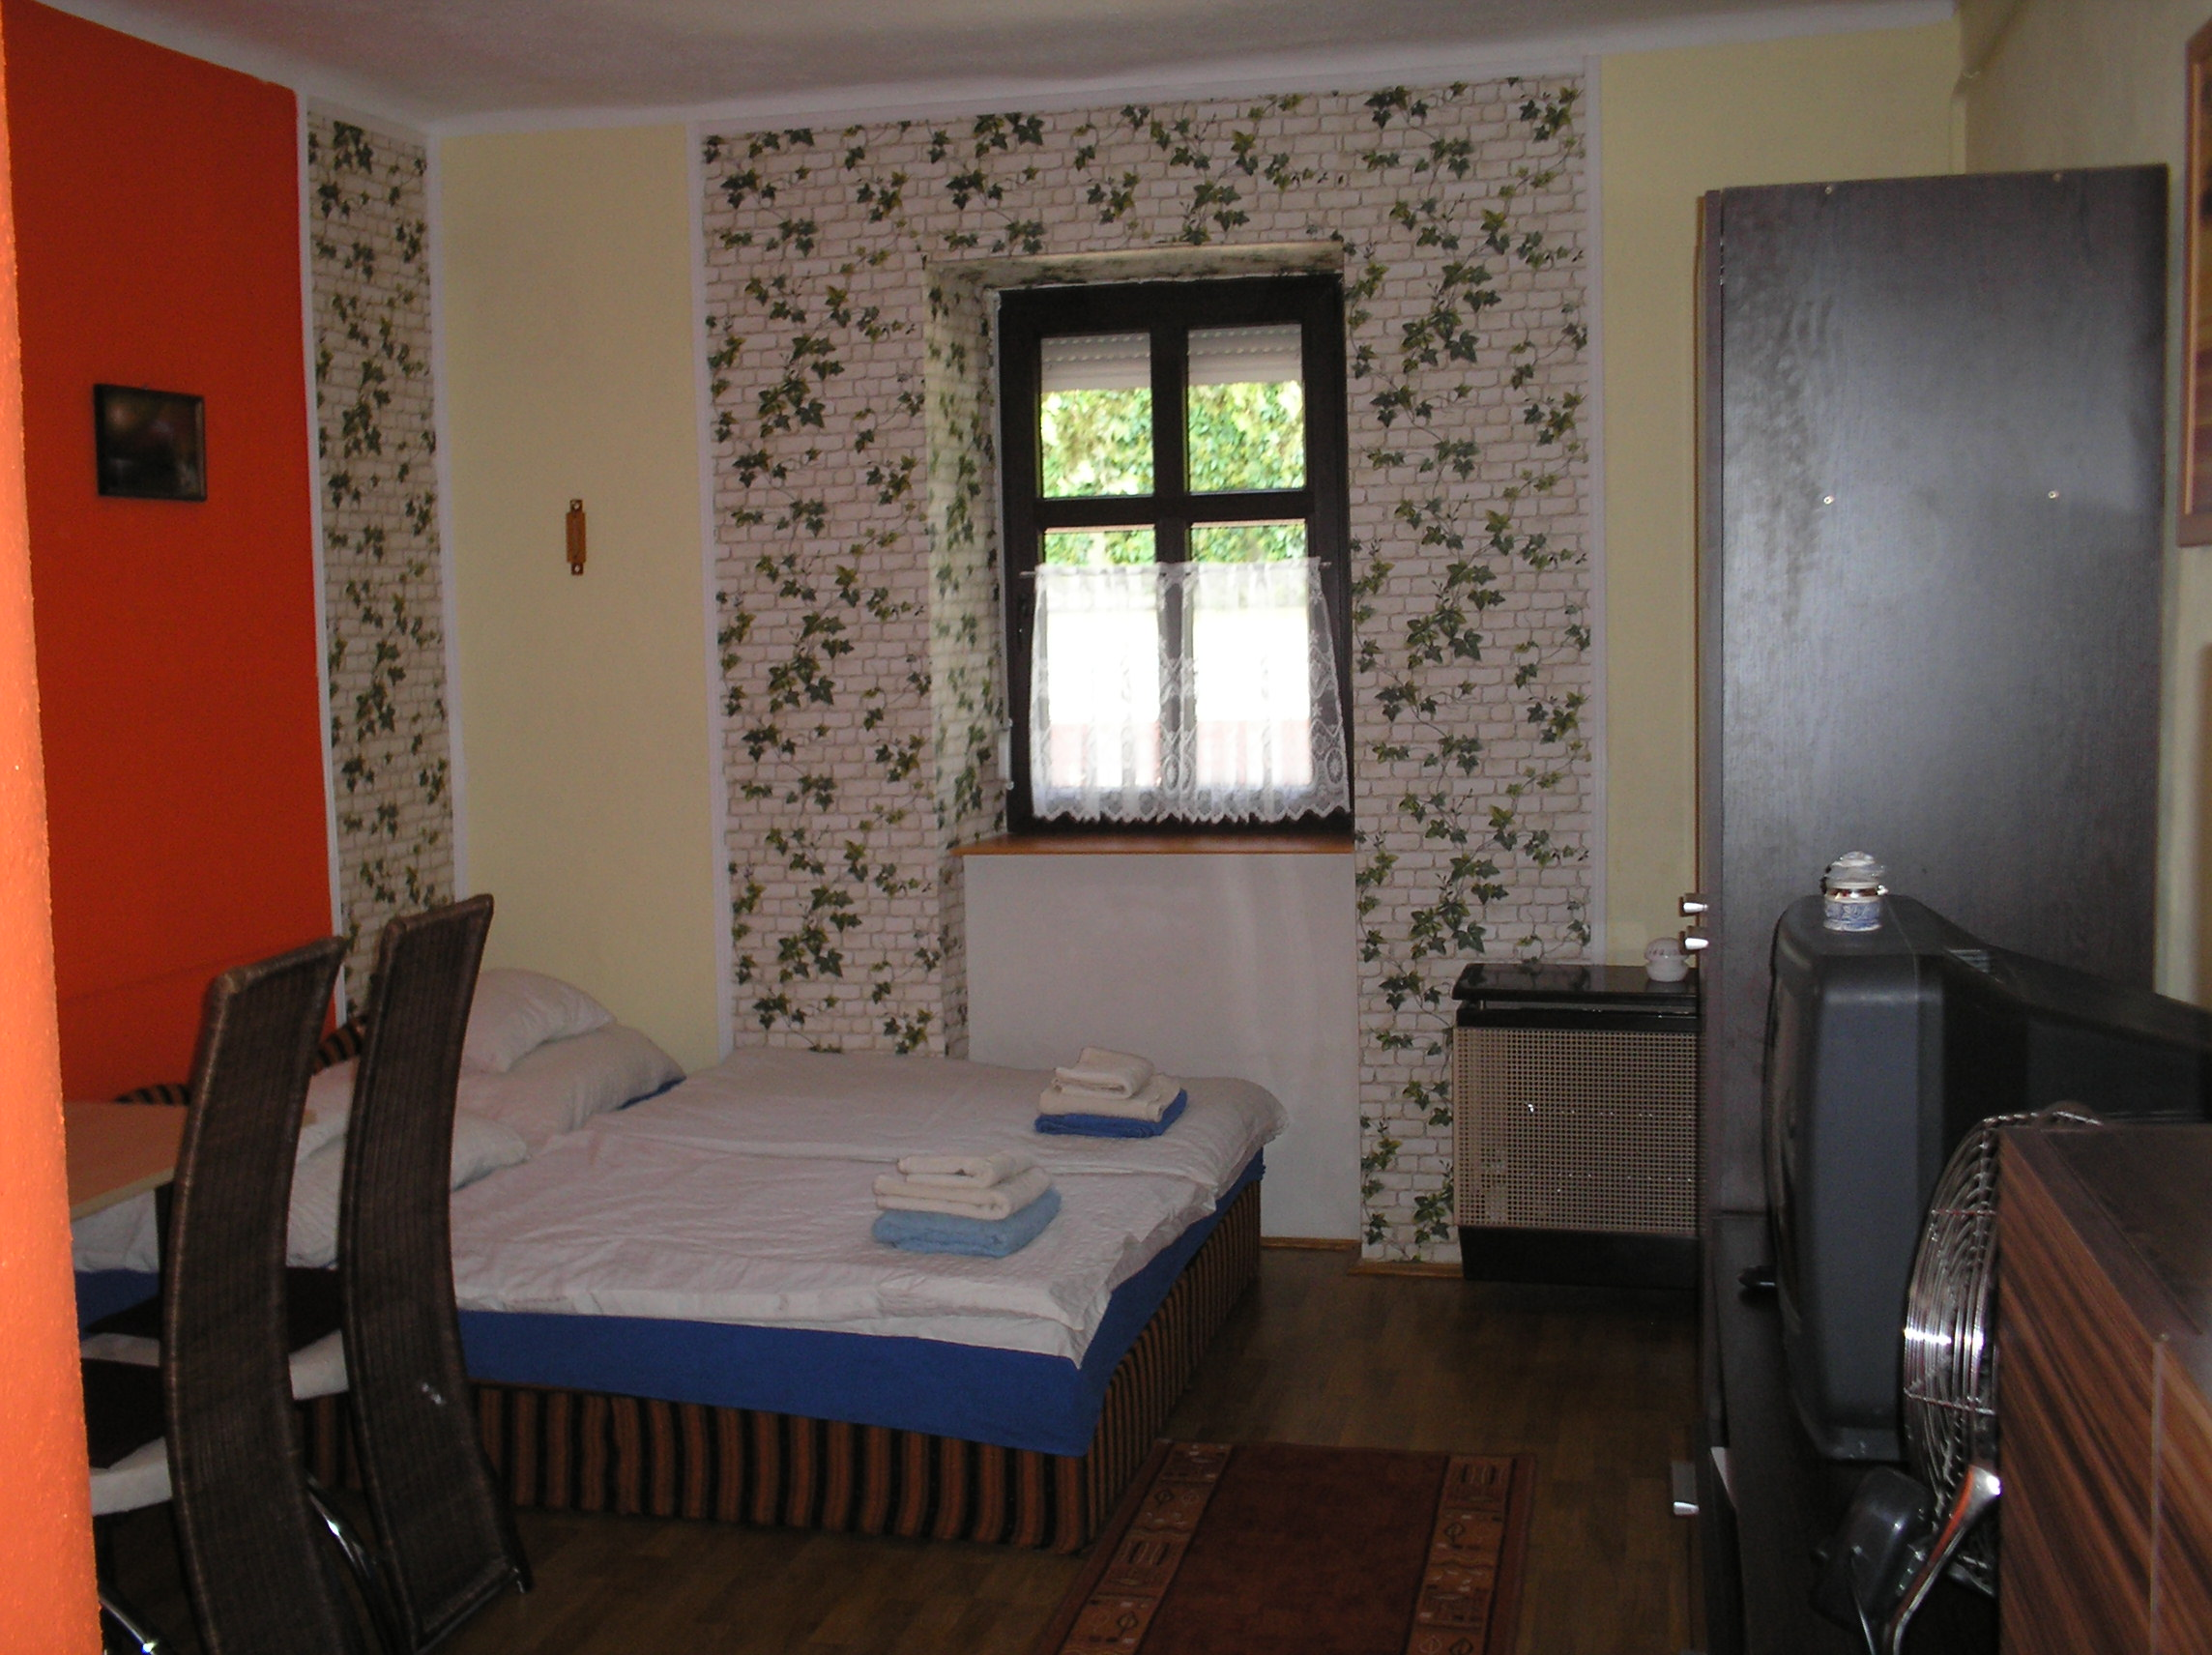 Studio fldszintes 2 fs apartman 1 hltrrel (ptgyazhat)